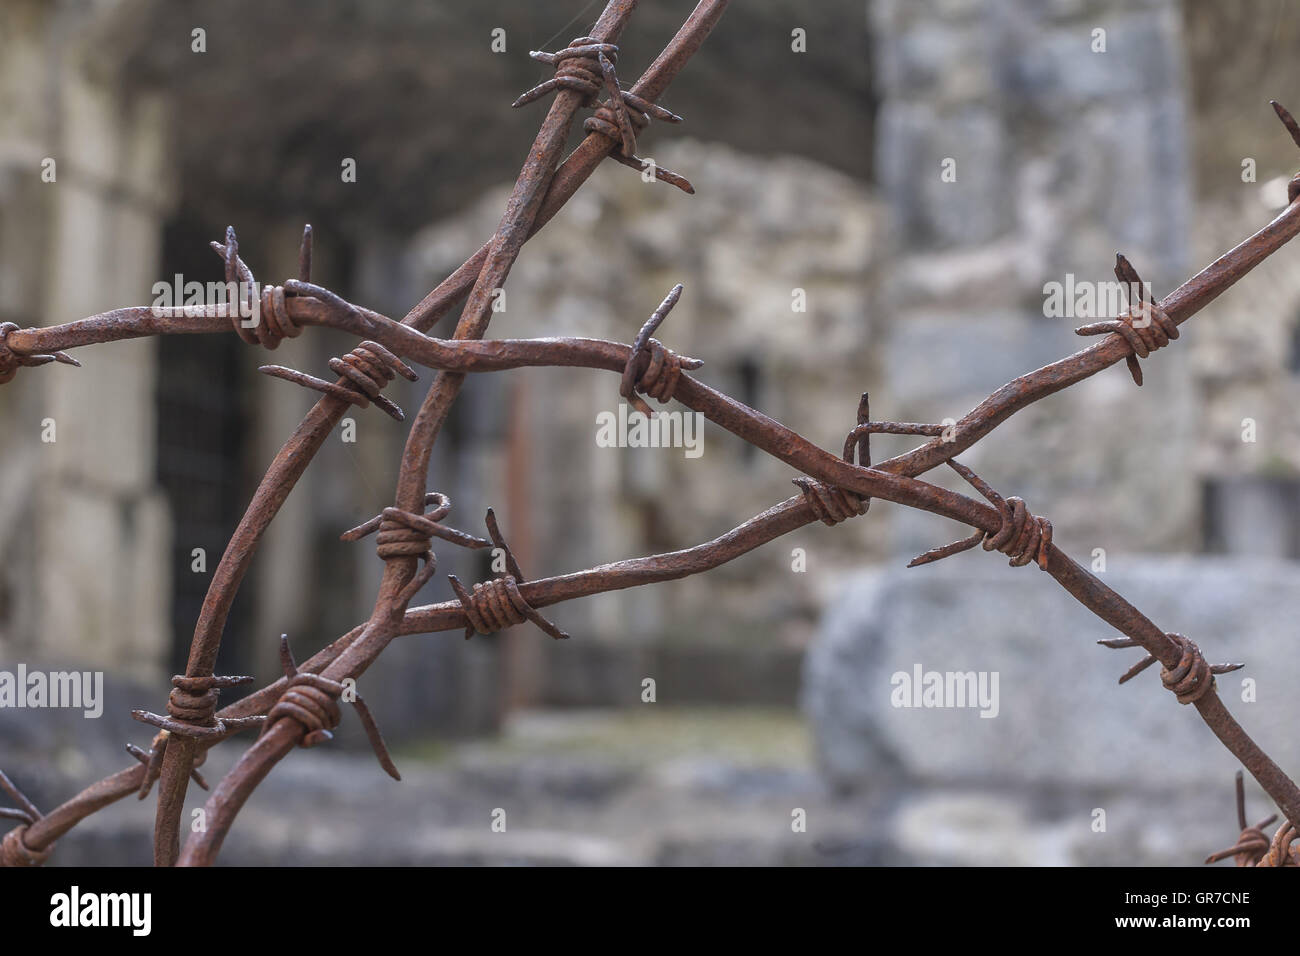 Rusty Barbed Wire On Old Italian War Fortifications Stock Photo ...